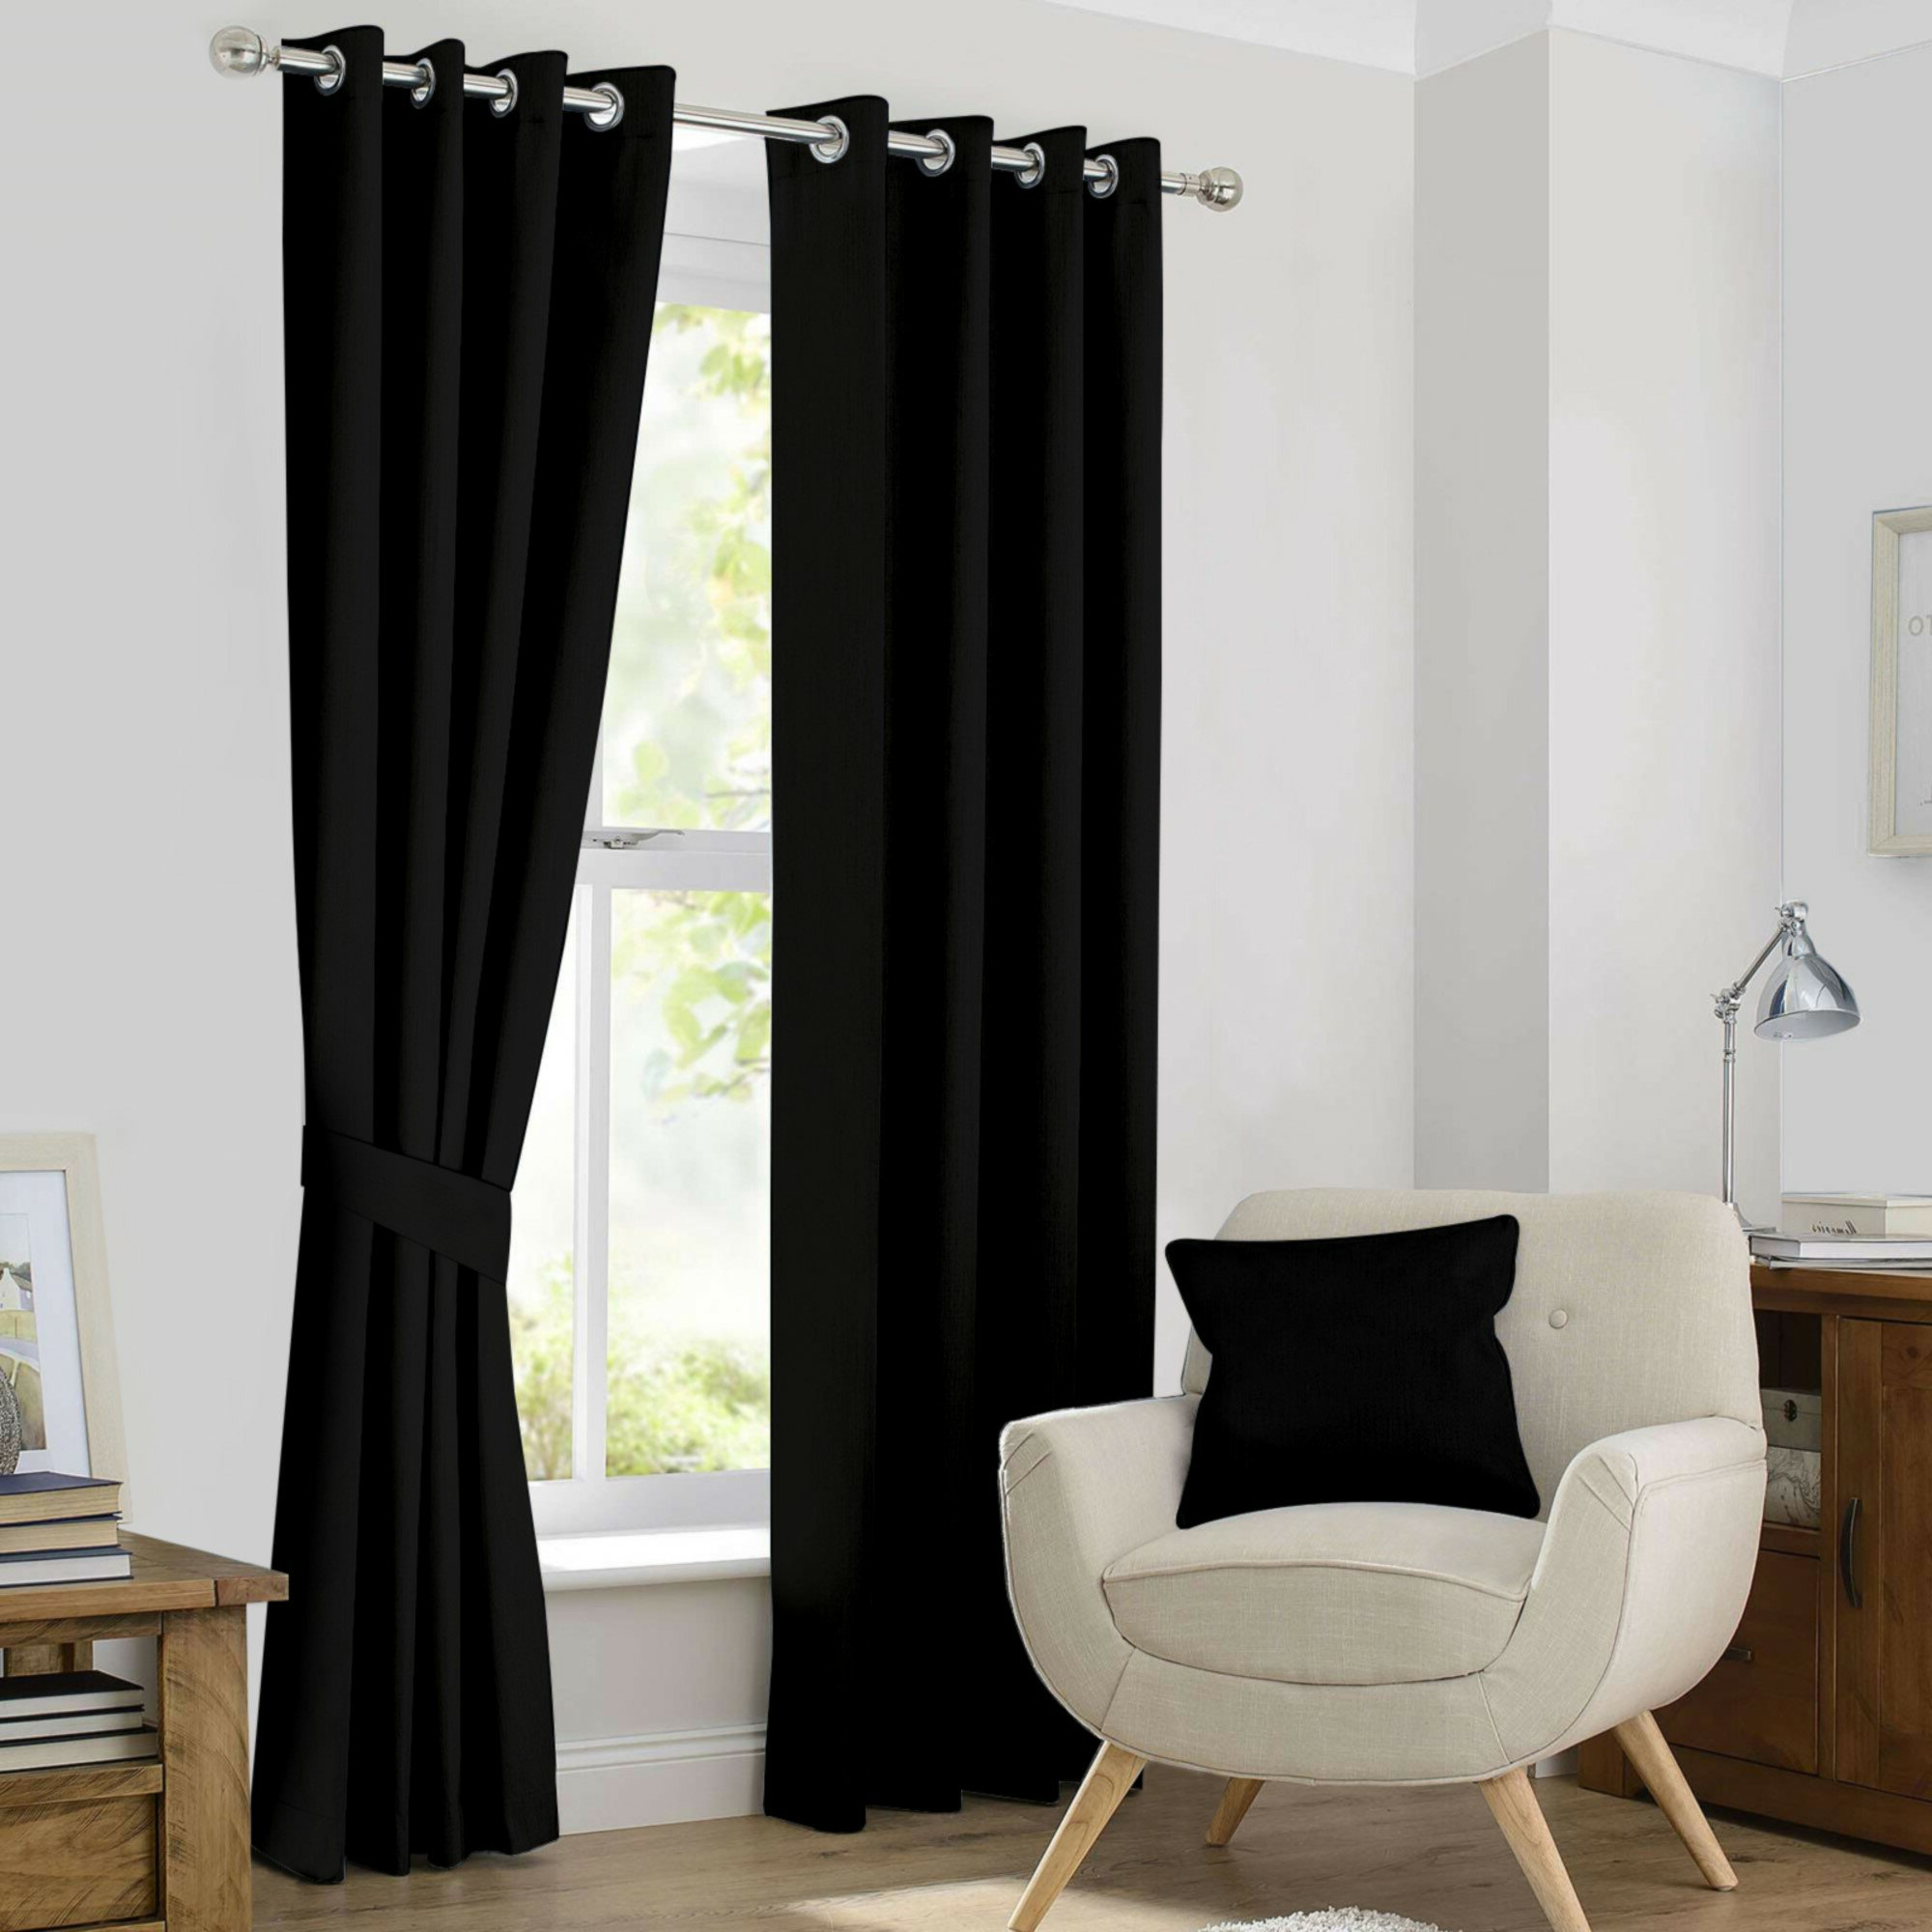 Classic Hotel Quality Water Resistant Fabric Curtains Set With Tiebacks With Regard To Most Recently Released Kaylee Solid Blackout Thermal Grommet Curtain Panels (View 7 of 20)